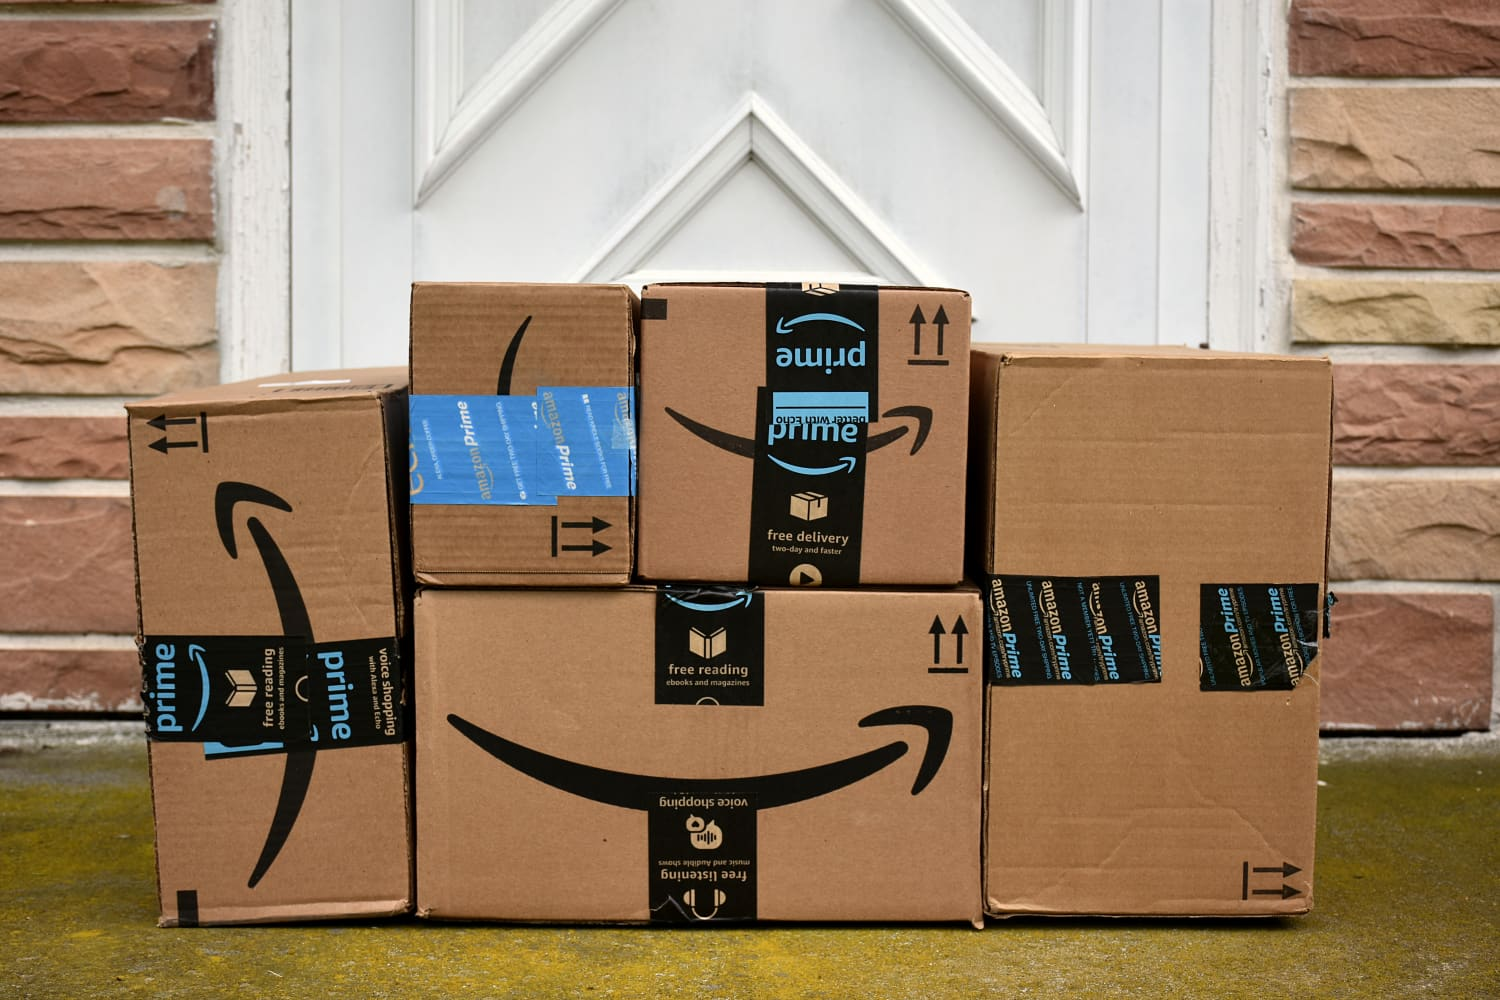 Amazon Prime Members Can Now Order Delivery from Whole Foods